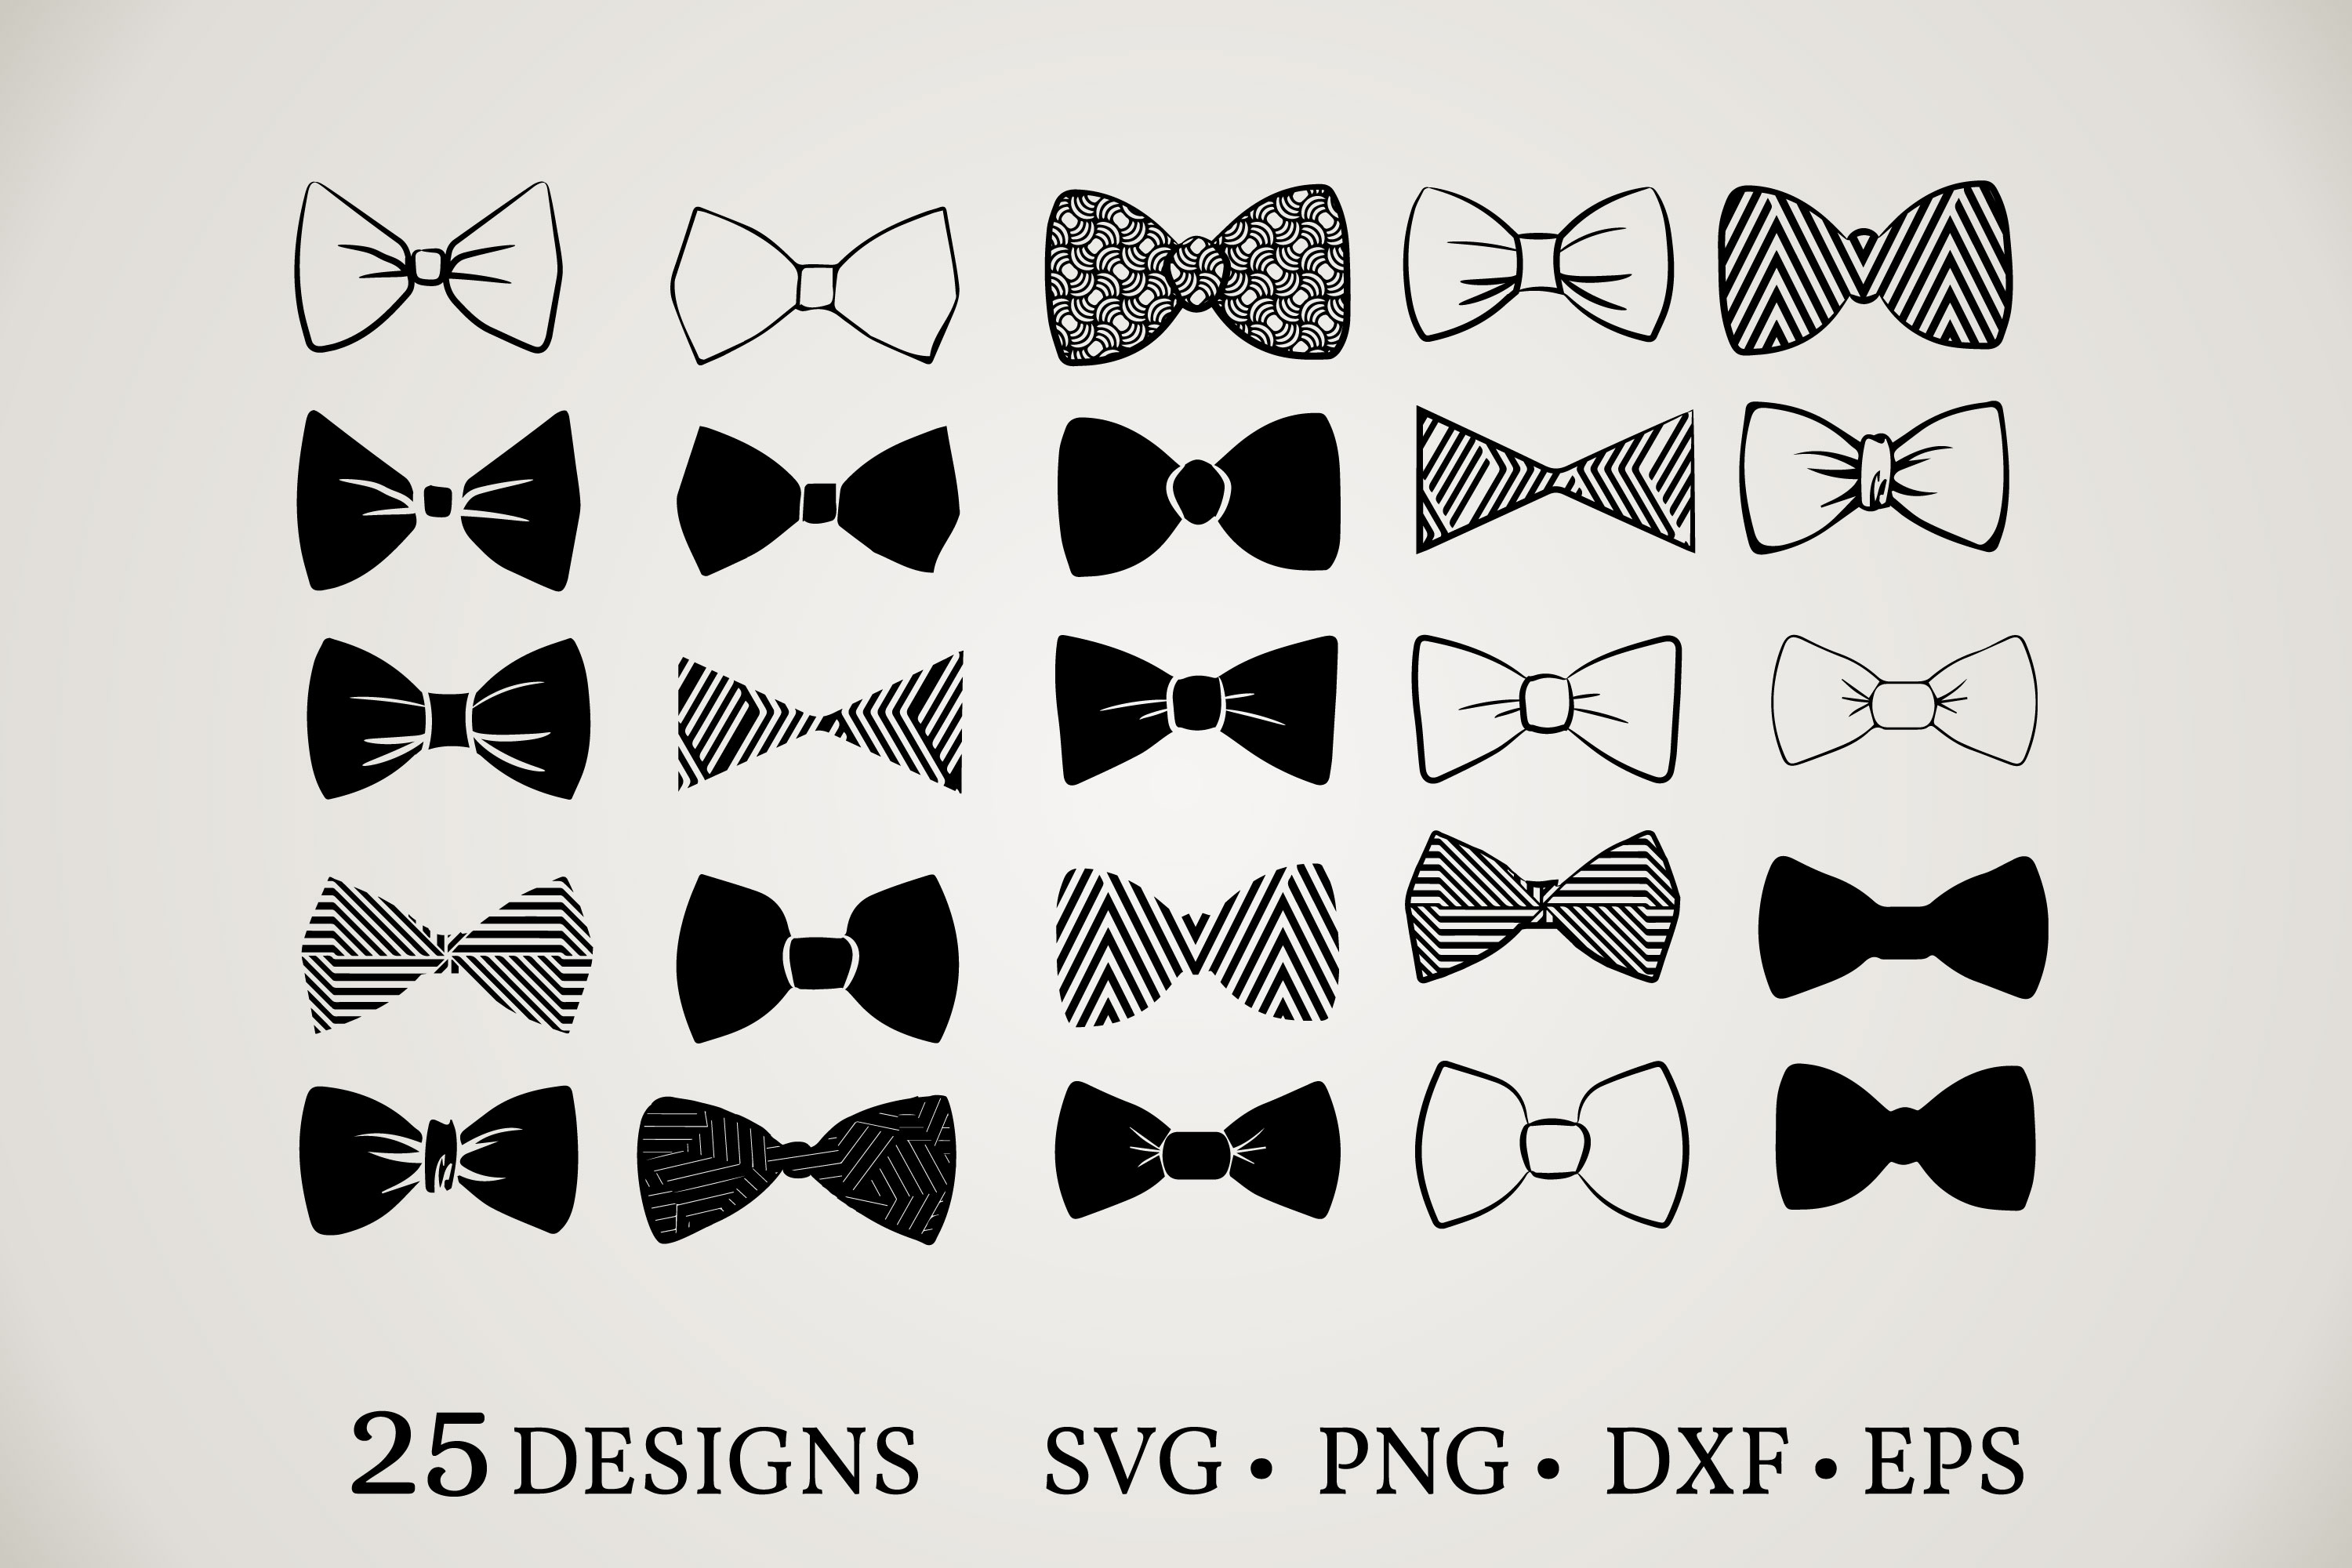 Download Free Bow Tie Vector Bundle Graphic By Euphoria Design Creative Fabrica for Cricut Explore, Silhouette and other cutting machines.